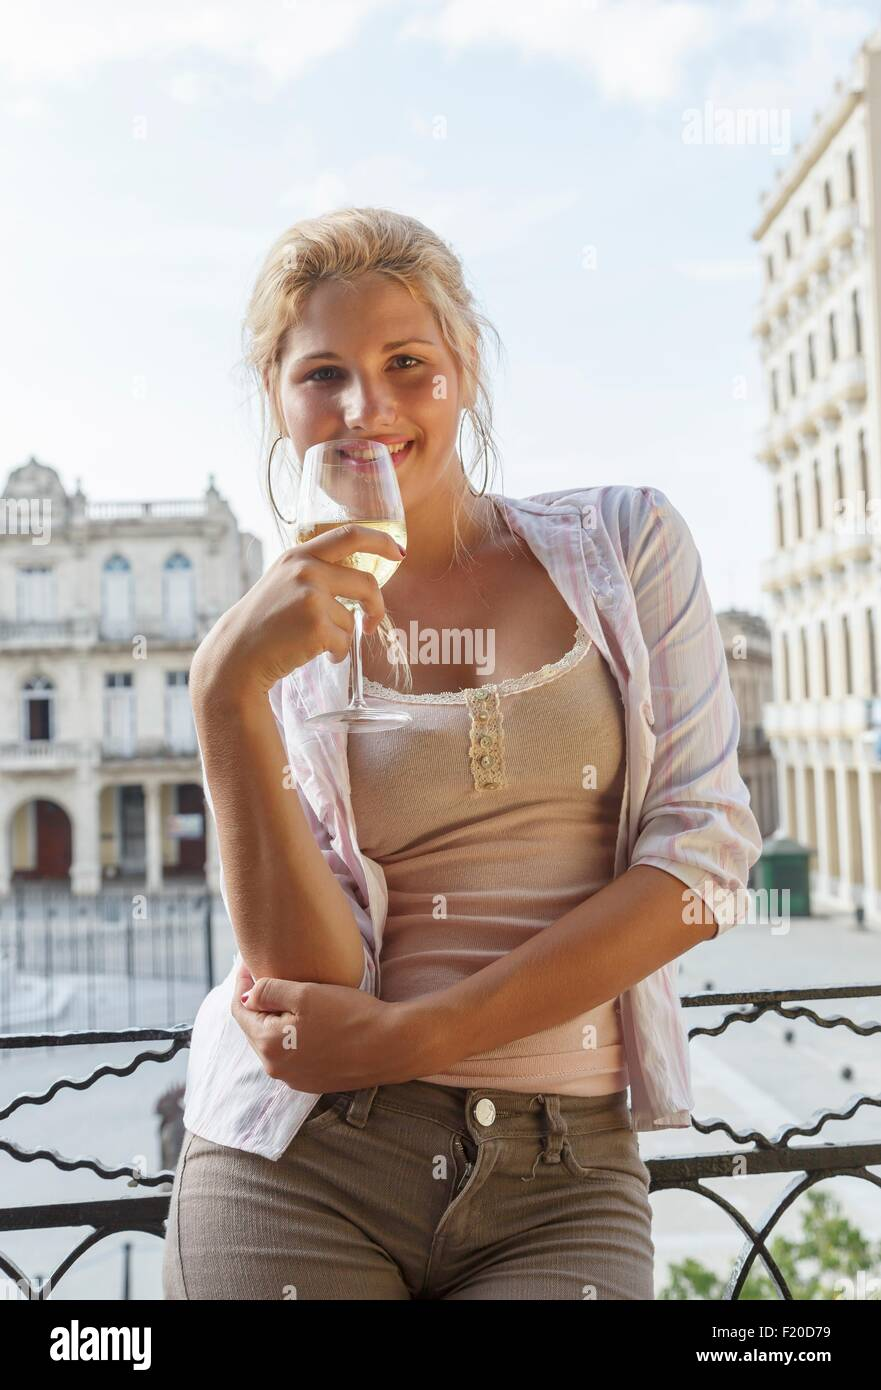 Portrait of young woman drinking wine on restaurant balcony in Plaza Vieja, Havana, Cuba - Stock Image